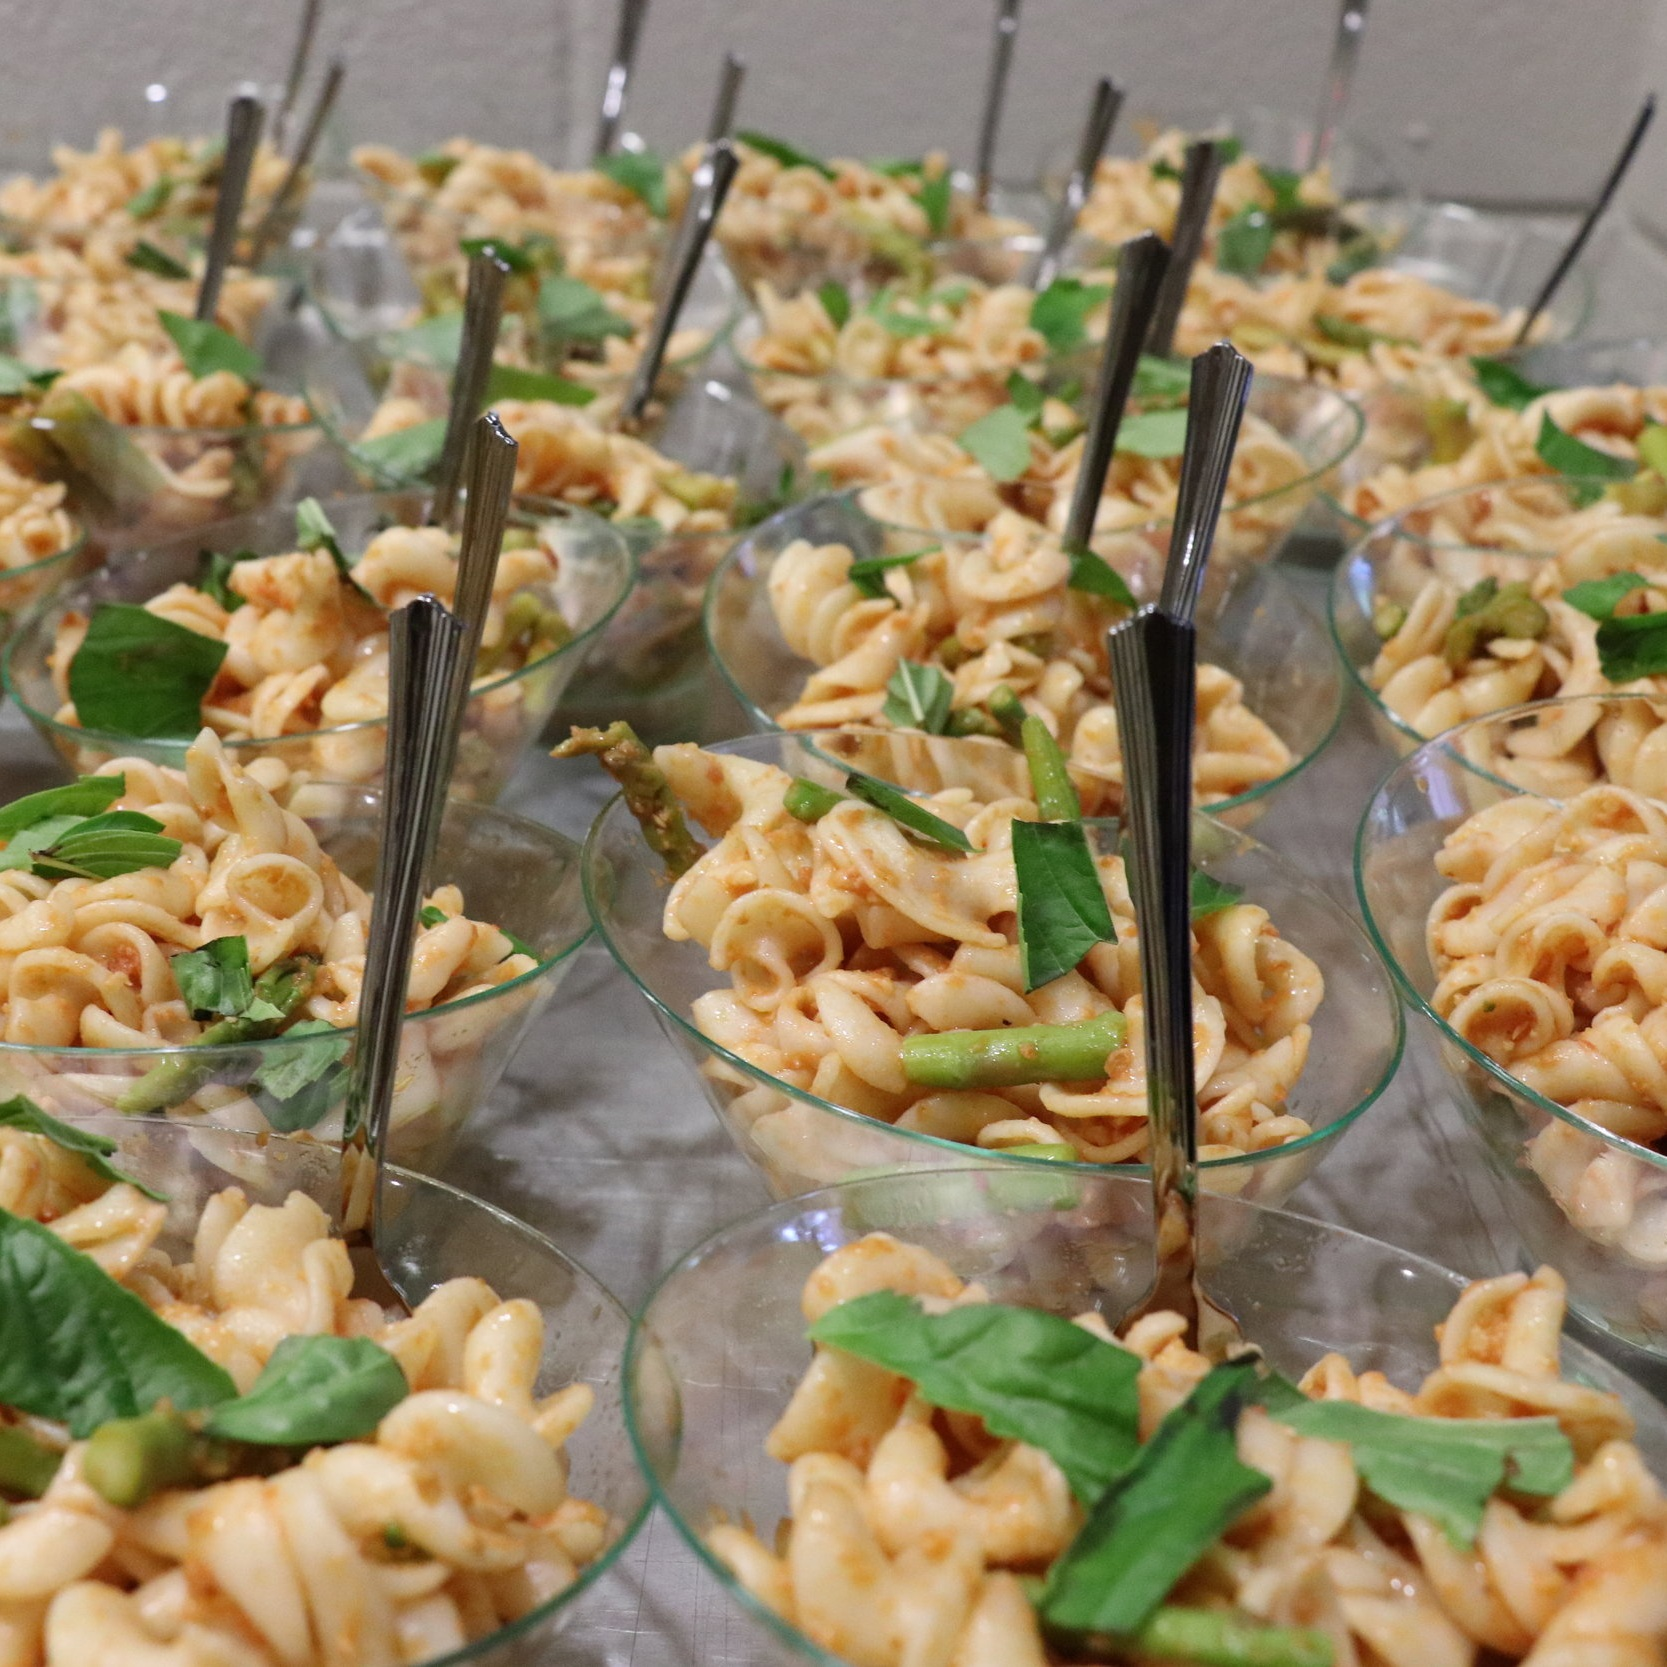 Cold Fusilli Pasta Salad, by Charlie Hilly and Sarah Hadzor - Charlie hosted a pop-up called Namaste Y'all at age 13 and continues to inspire through his dedication to his own learning and development of his own craft.